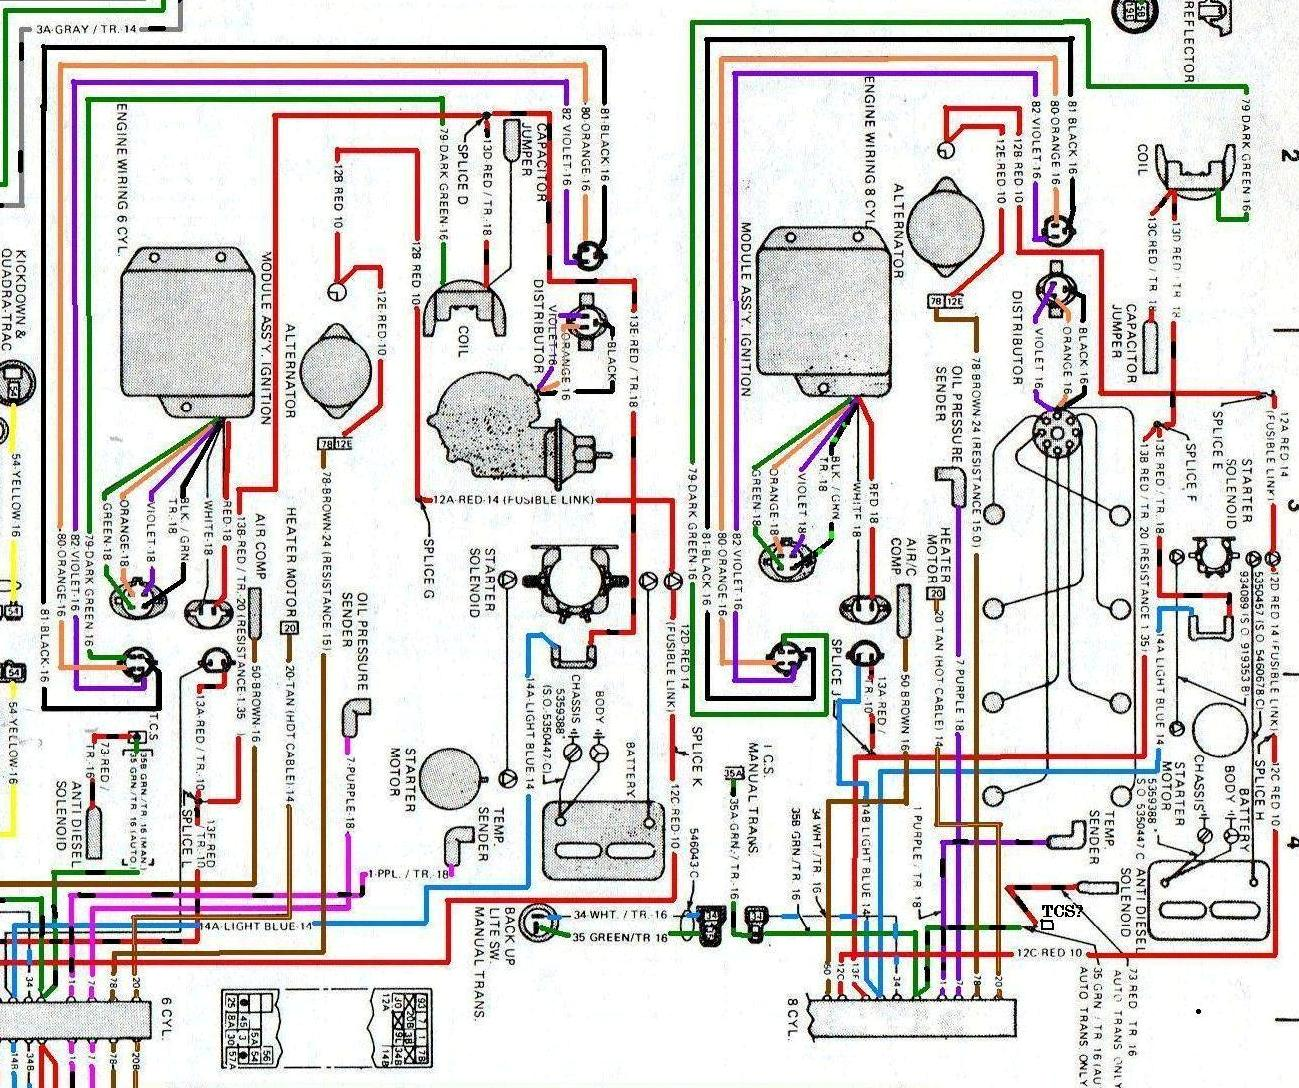 Jeep Cj7 Dash Wiring - Wiring Diagram Replace load-process -  load-process.miramontiseo.itload-process.miramontiseo.it